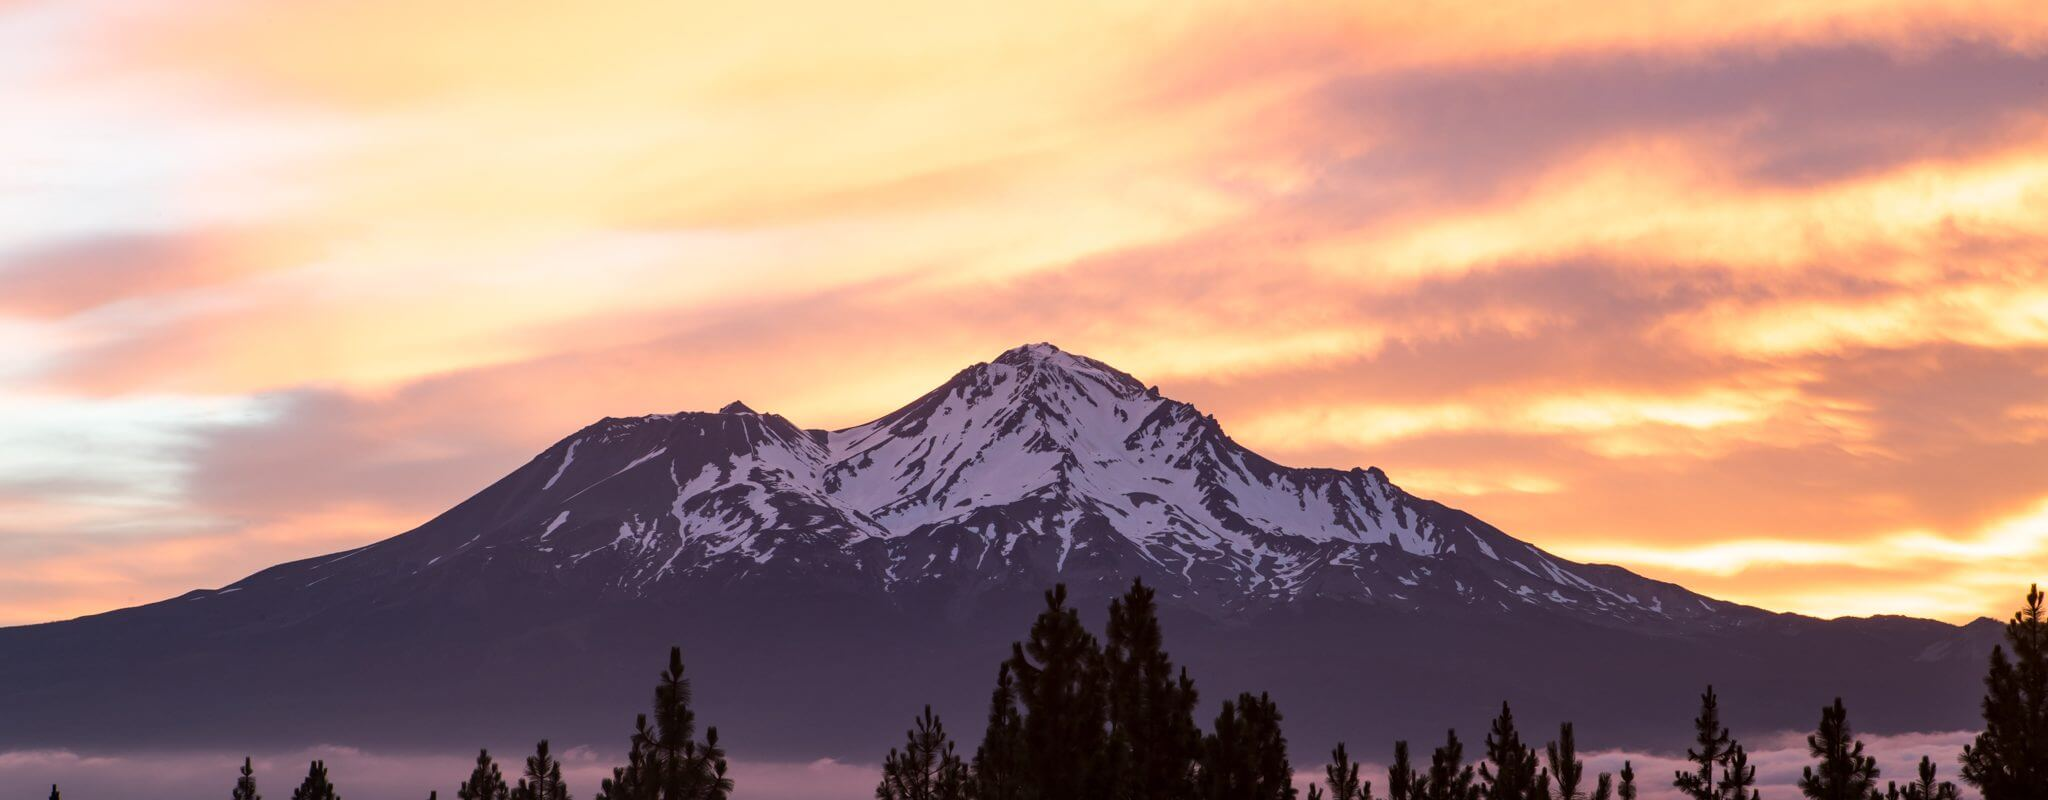 Sunset snow capped Bend, Oregon